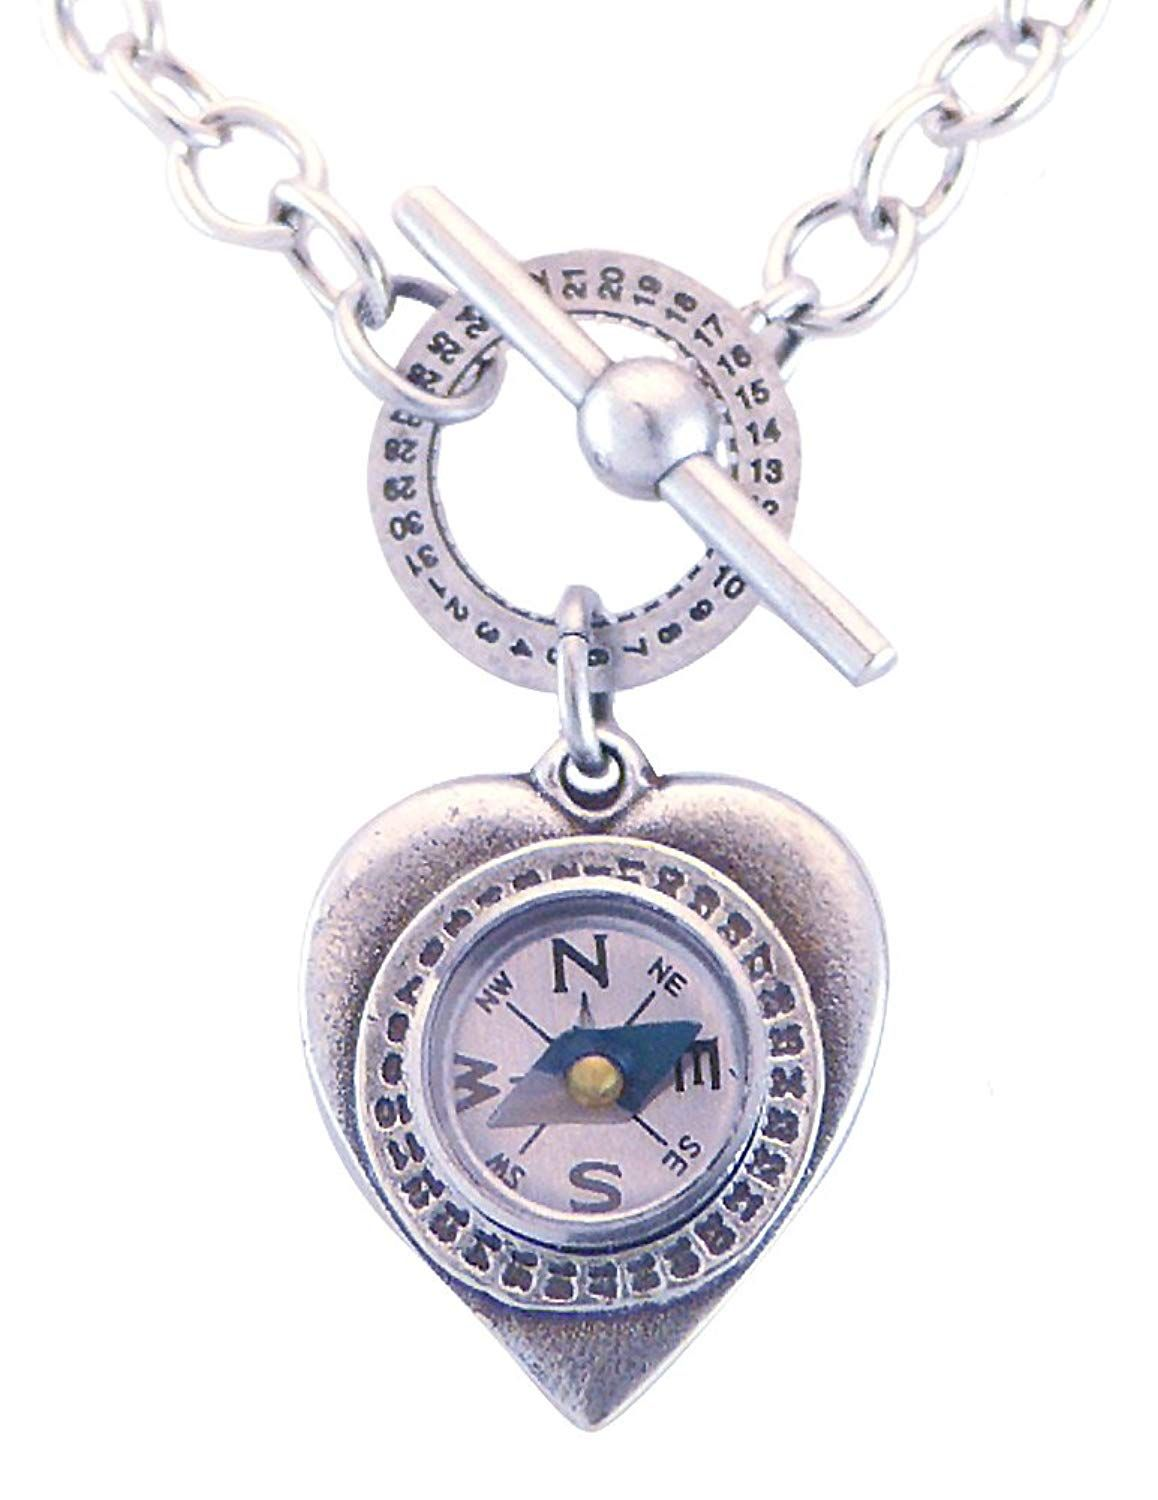 5fe162242526c Mullanium Jewelry Heart and Compass Pendant on Sterling Silver Link ...